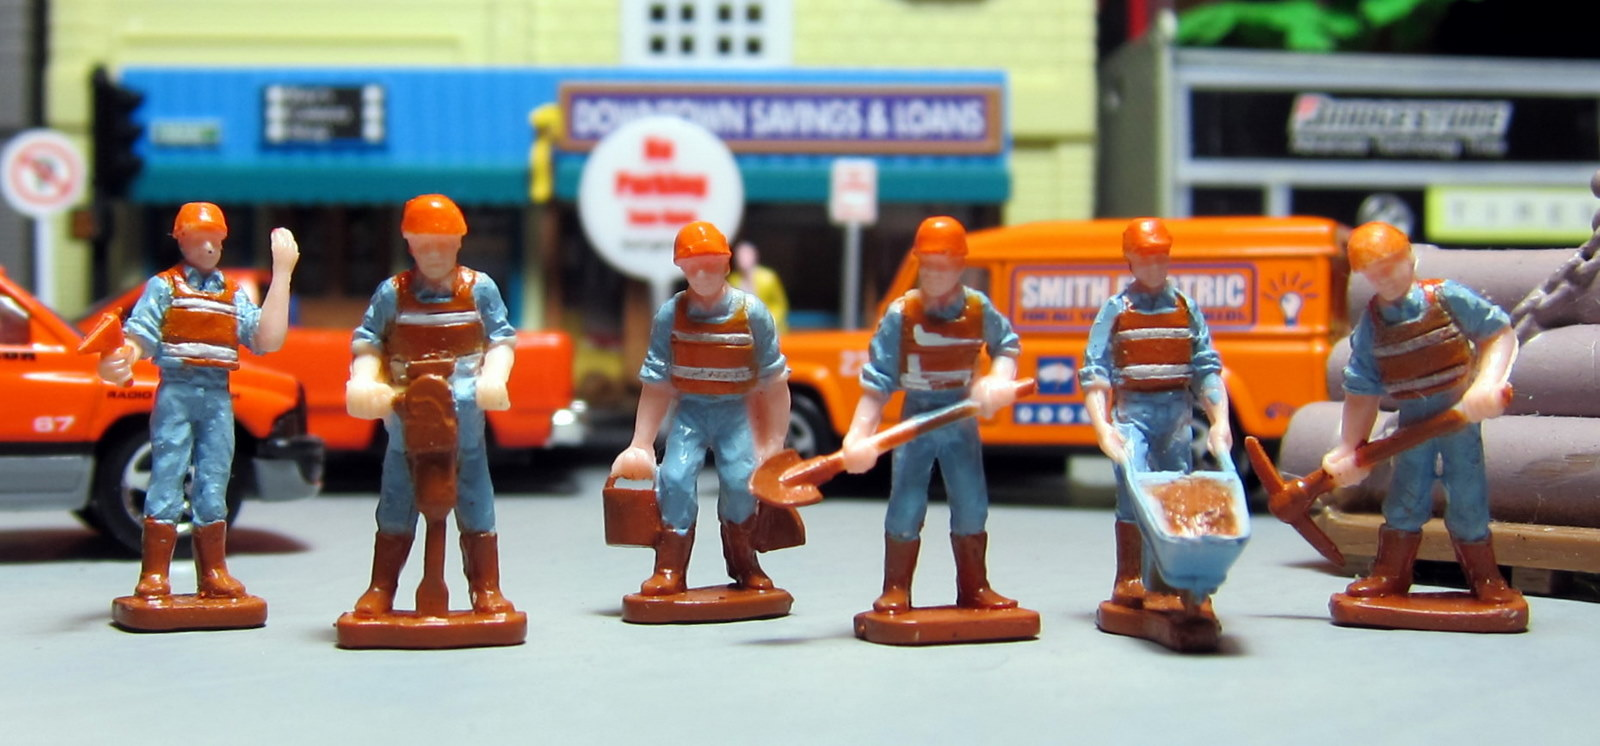 Diorama Fun!: Tonka Construction Workers